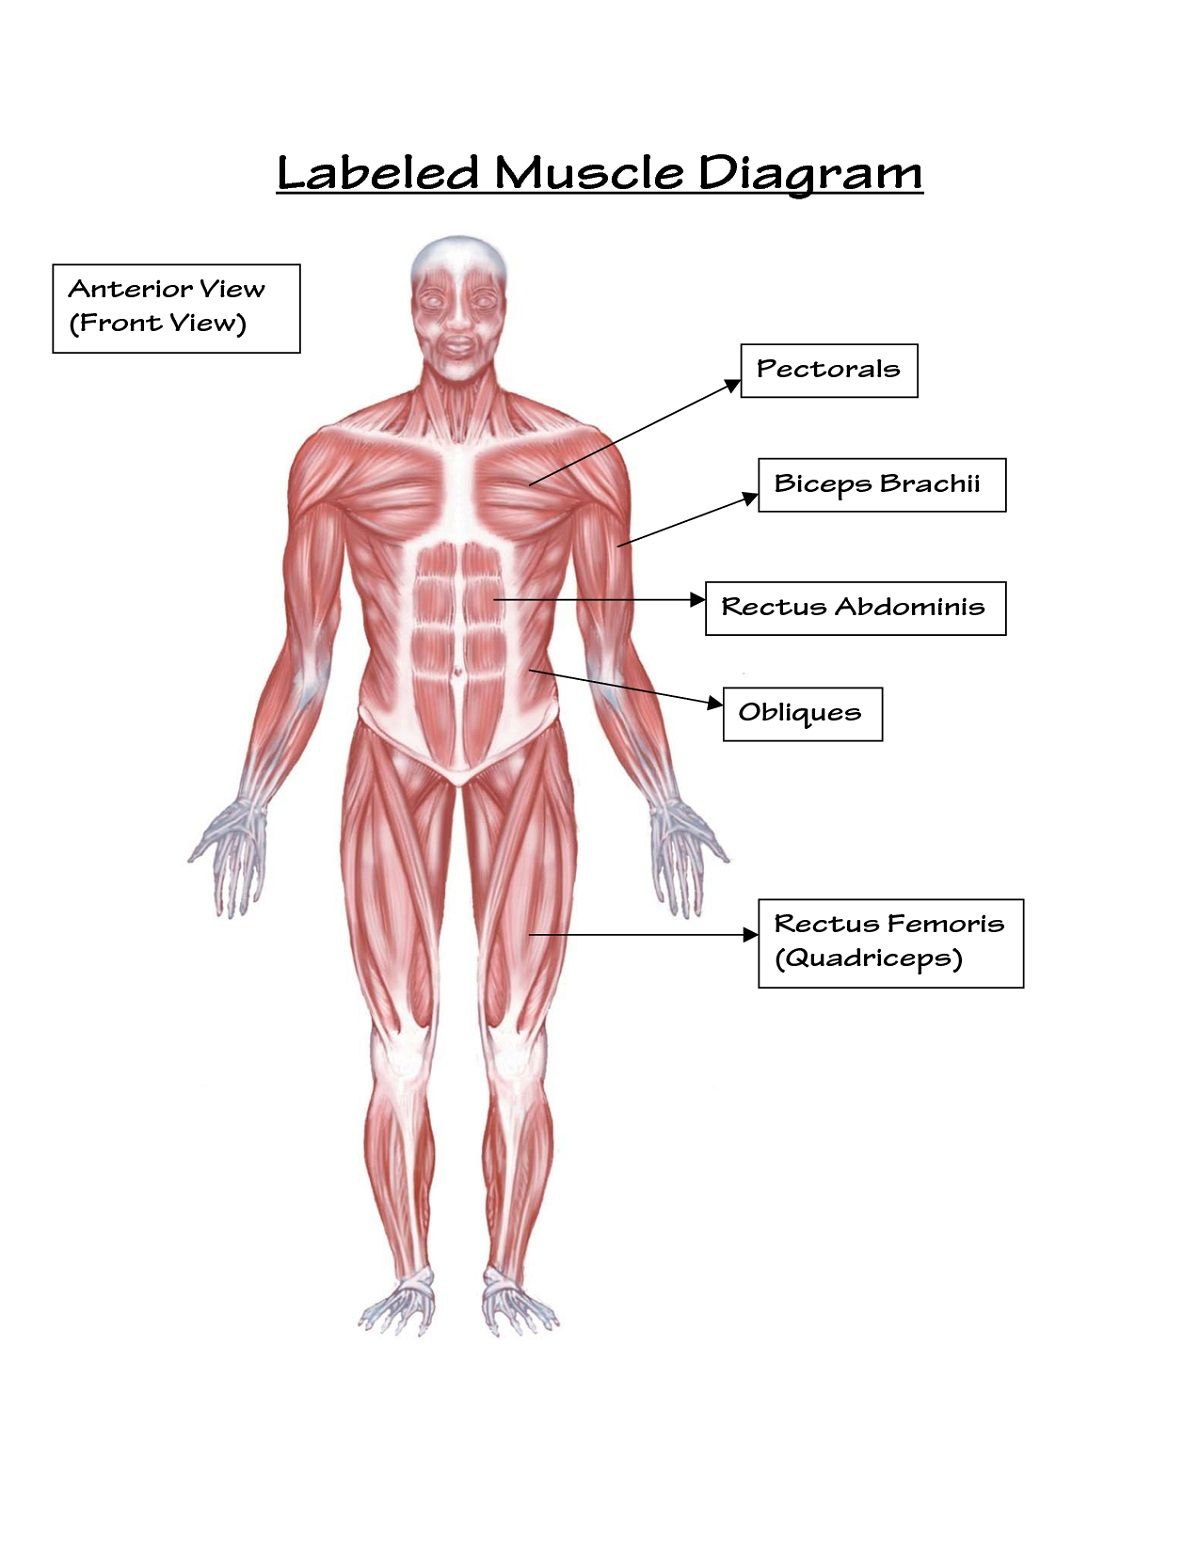 f3b4802066138f1e5c84f74e75b75dd3 diagram of the muscular system human body anatomy pinterest